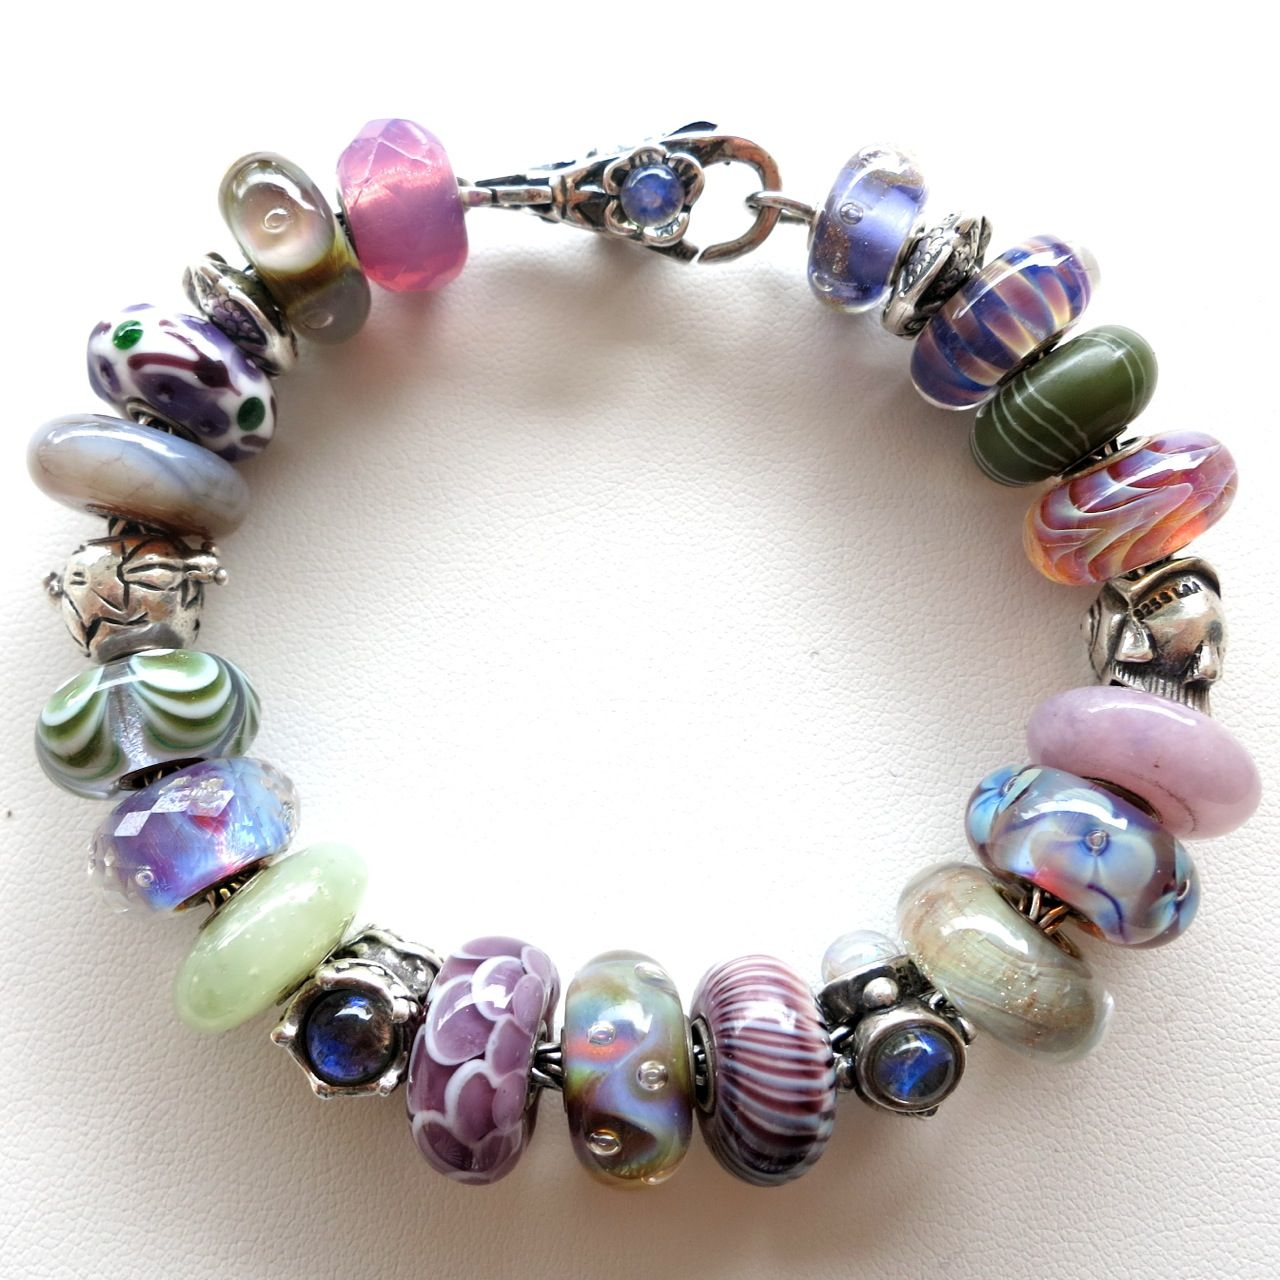 at and designs day trollbead bracelet bracelets by tartooful pin trollbeads challenge design cathy